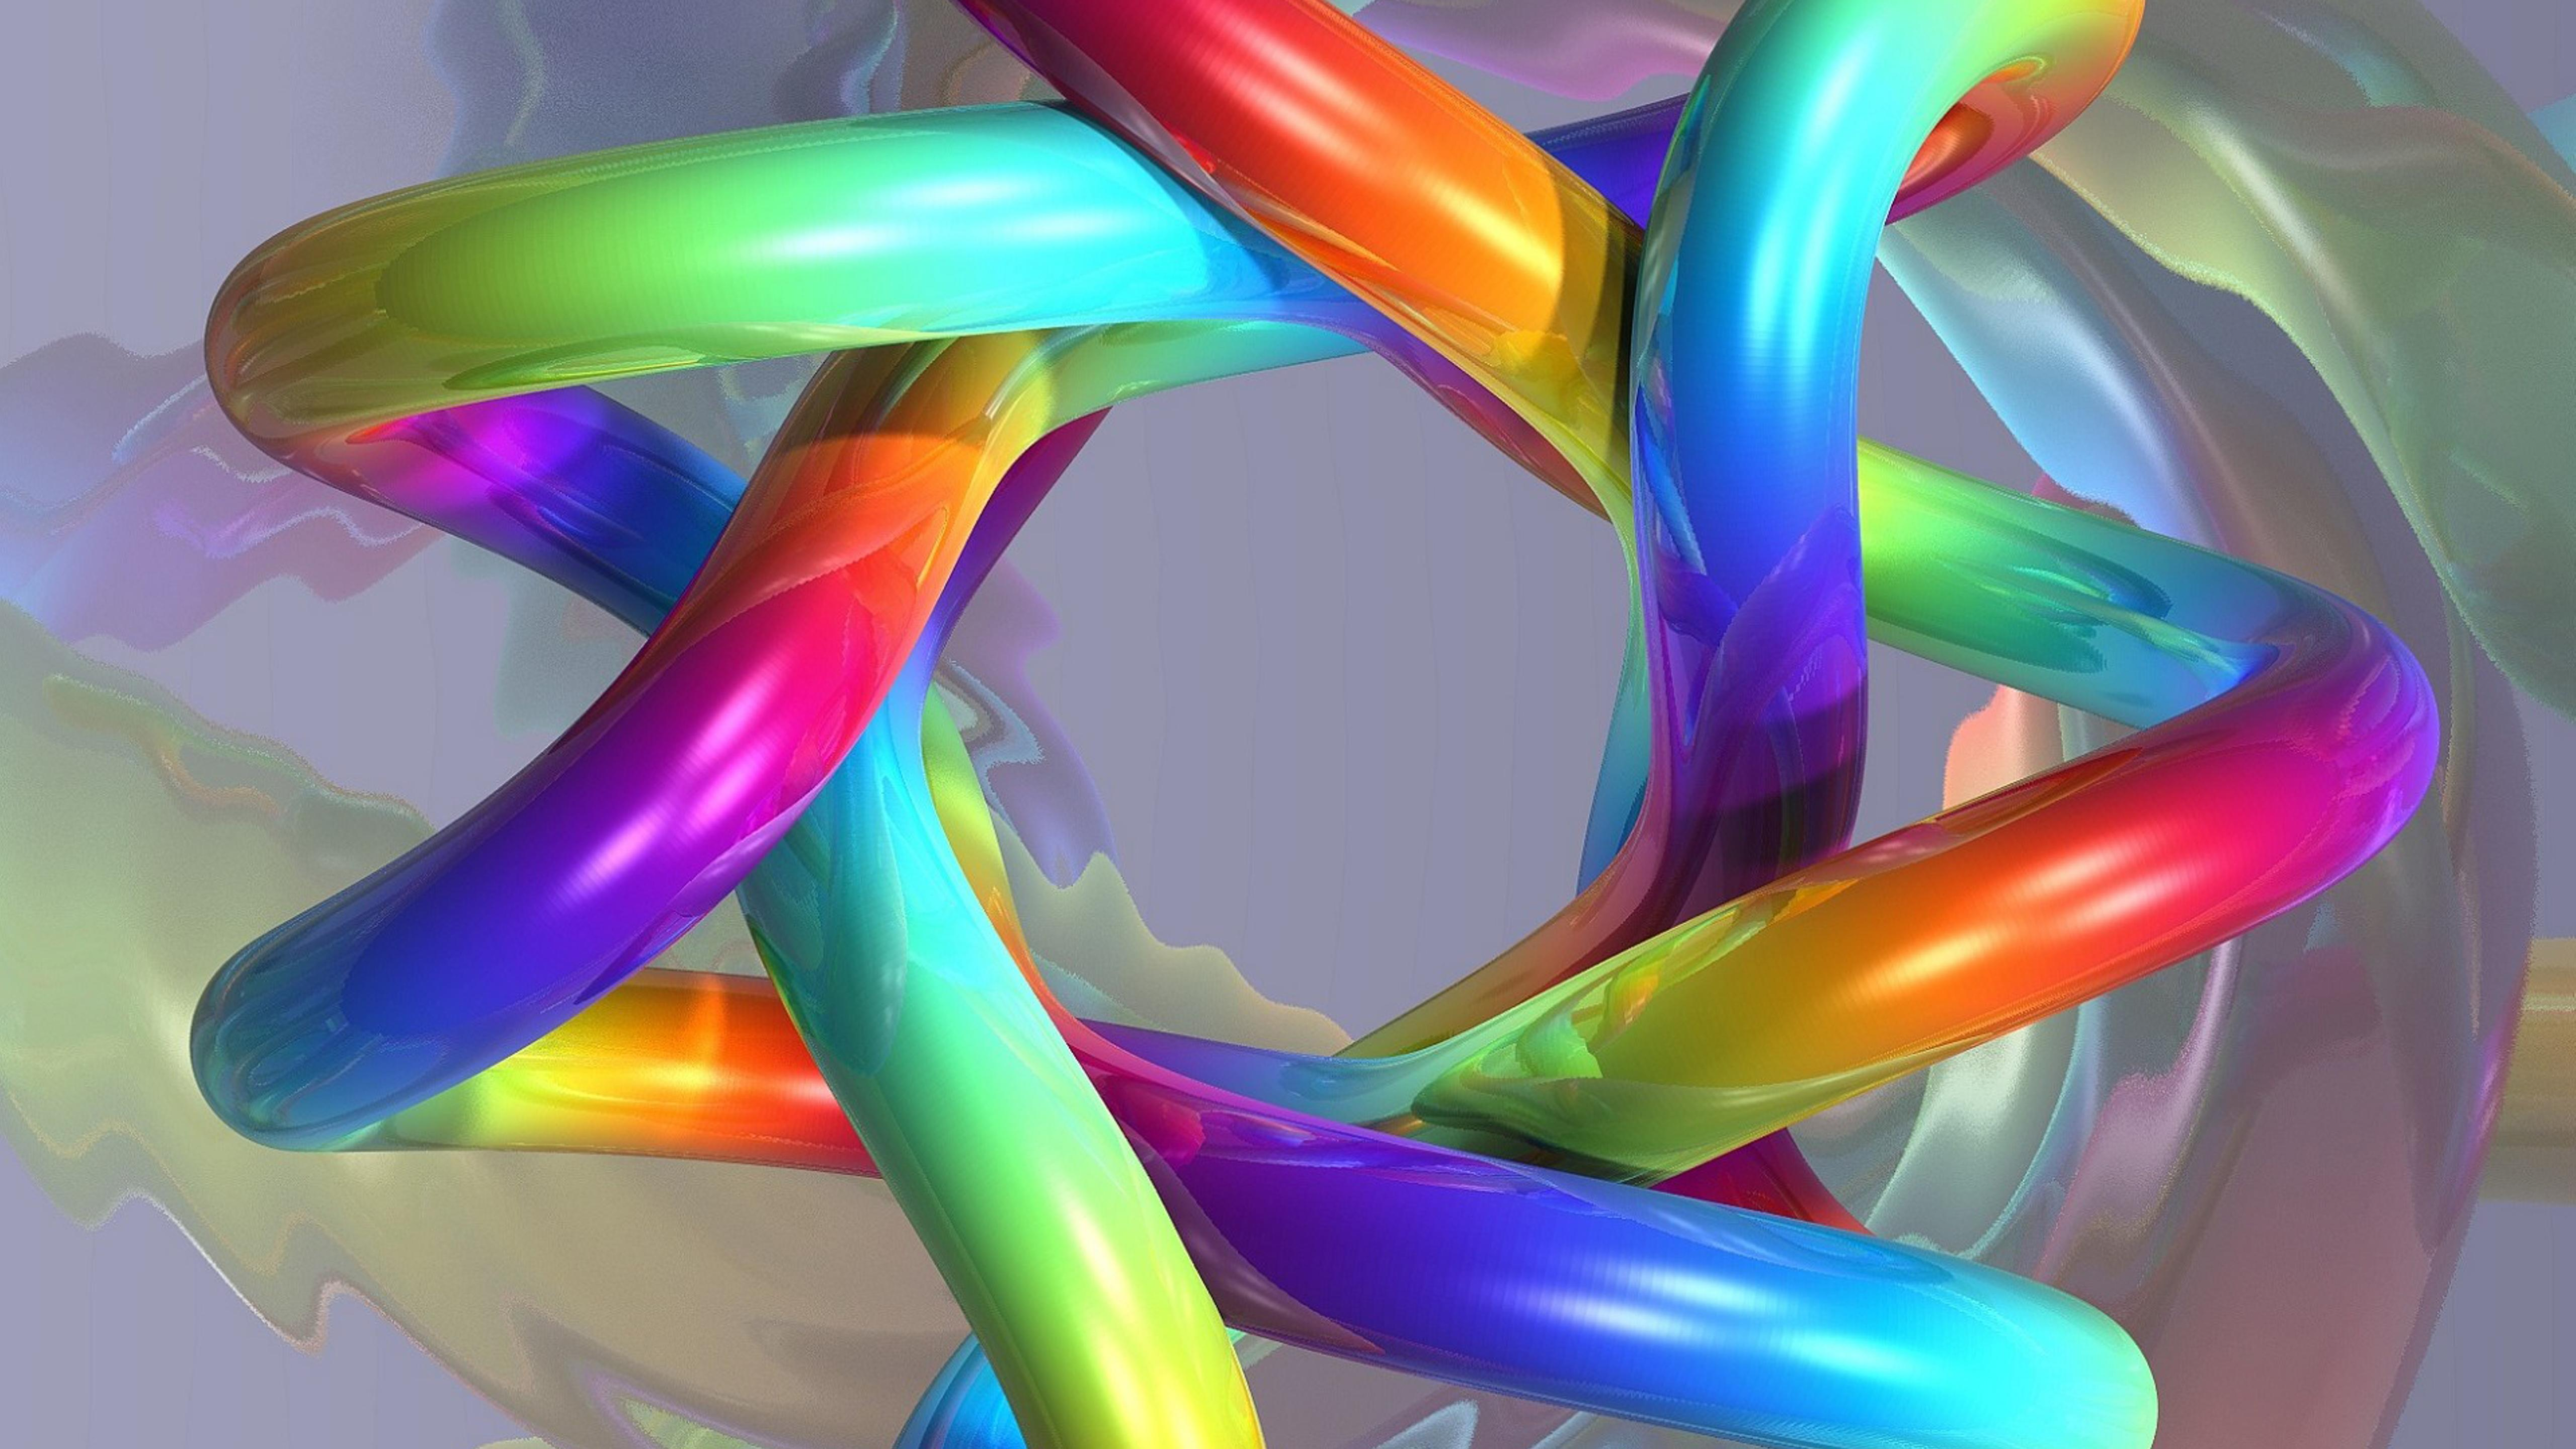 Colorful Abstract Wallpaper Download 5120x2880